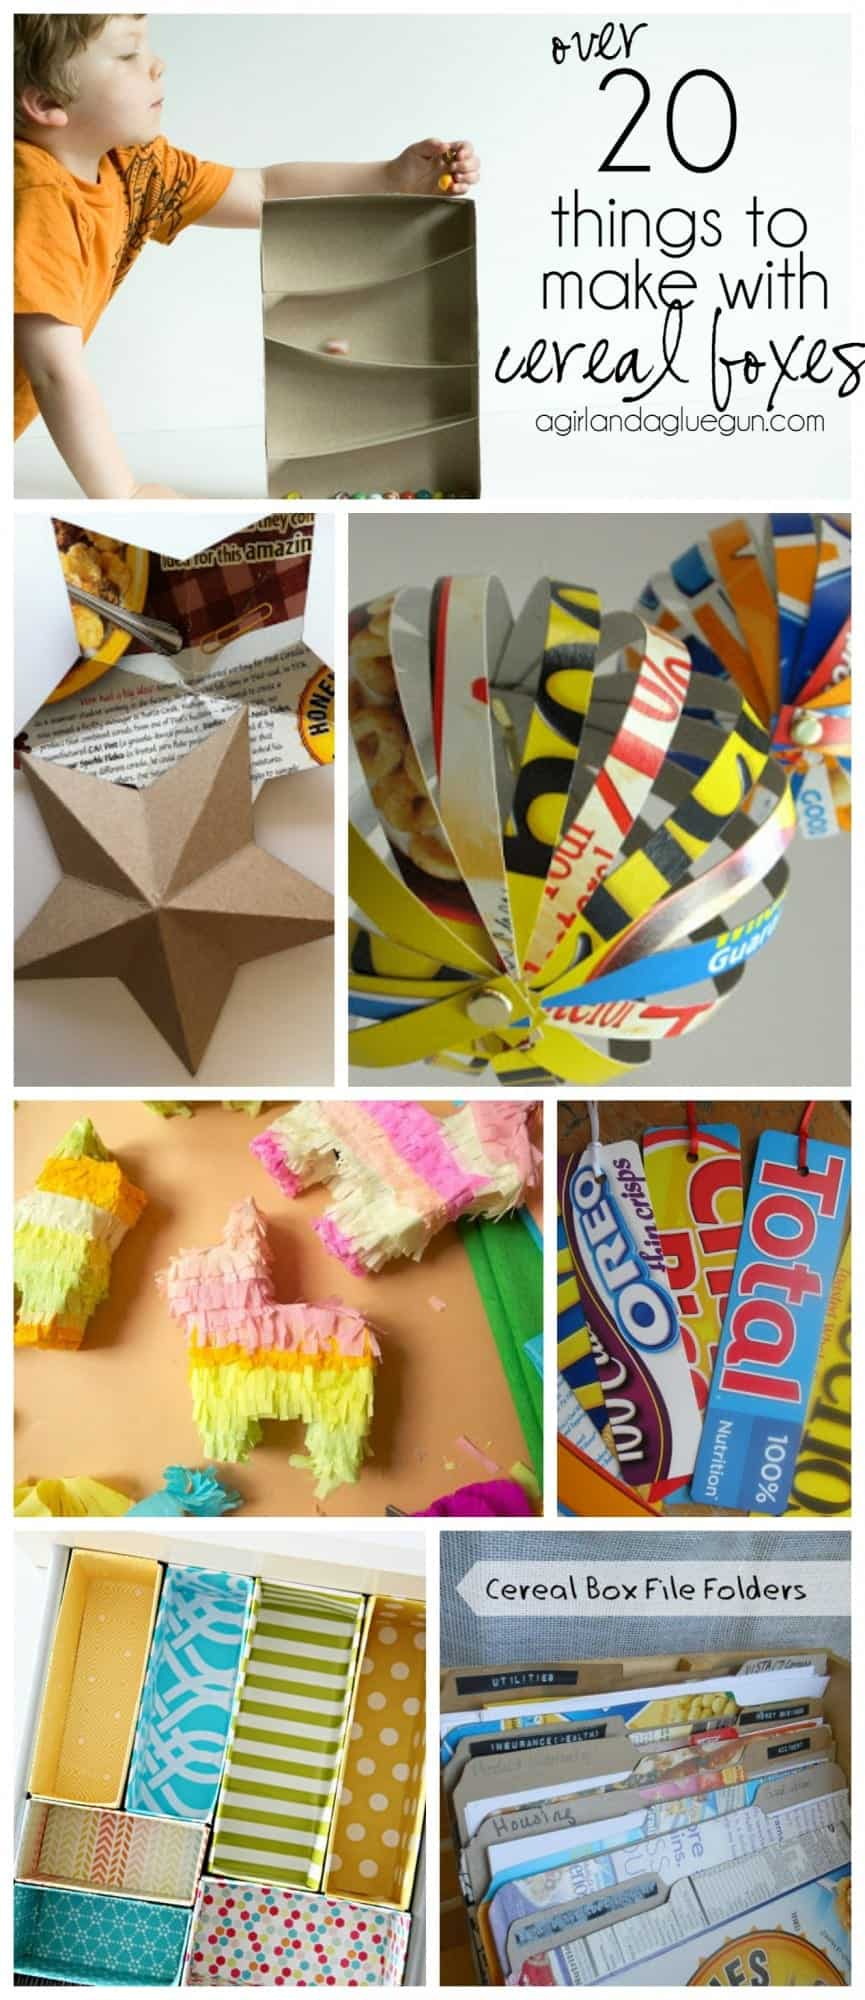 over 30 things to make with cereal boxes